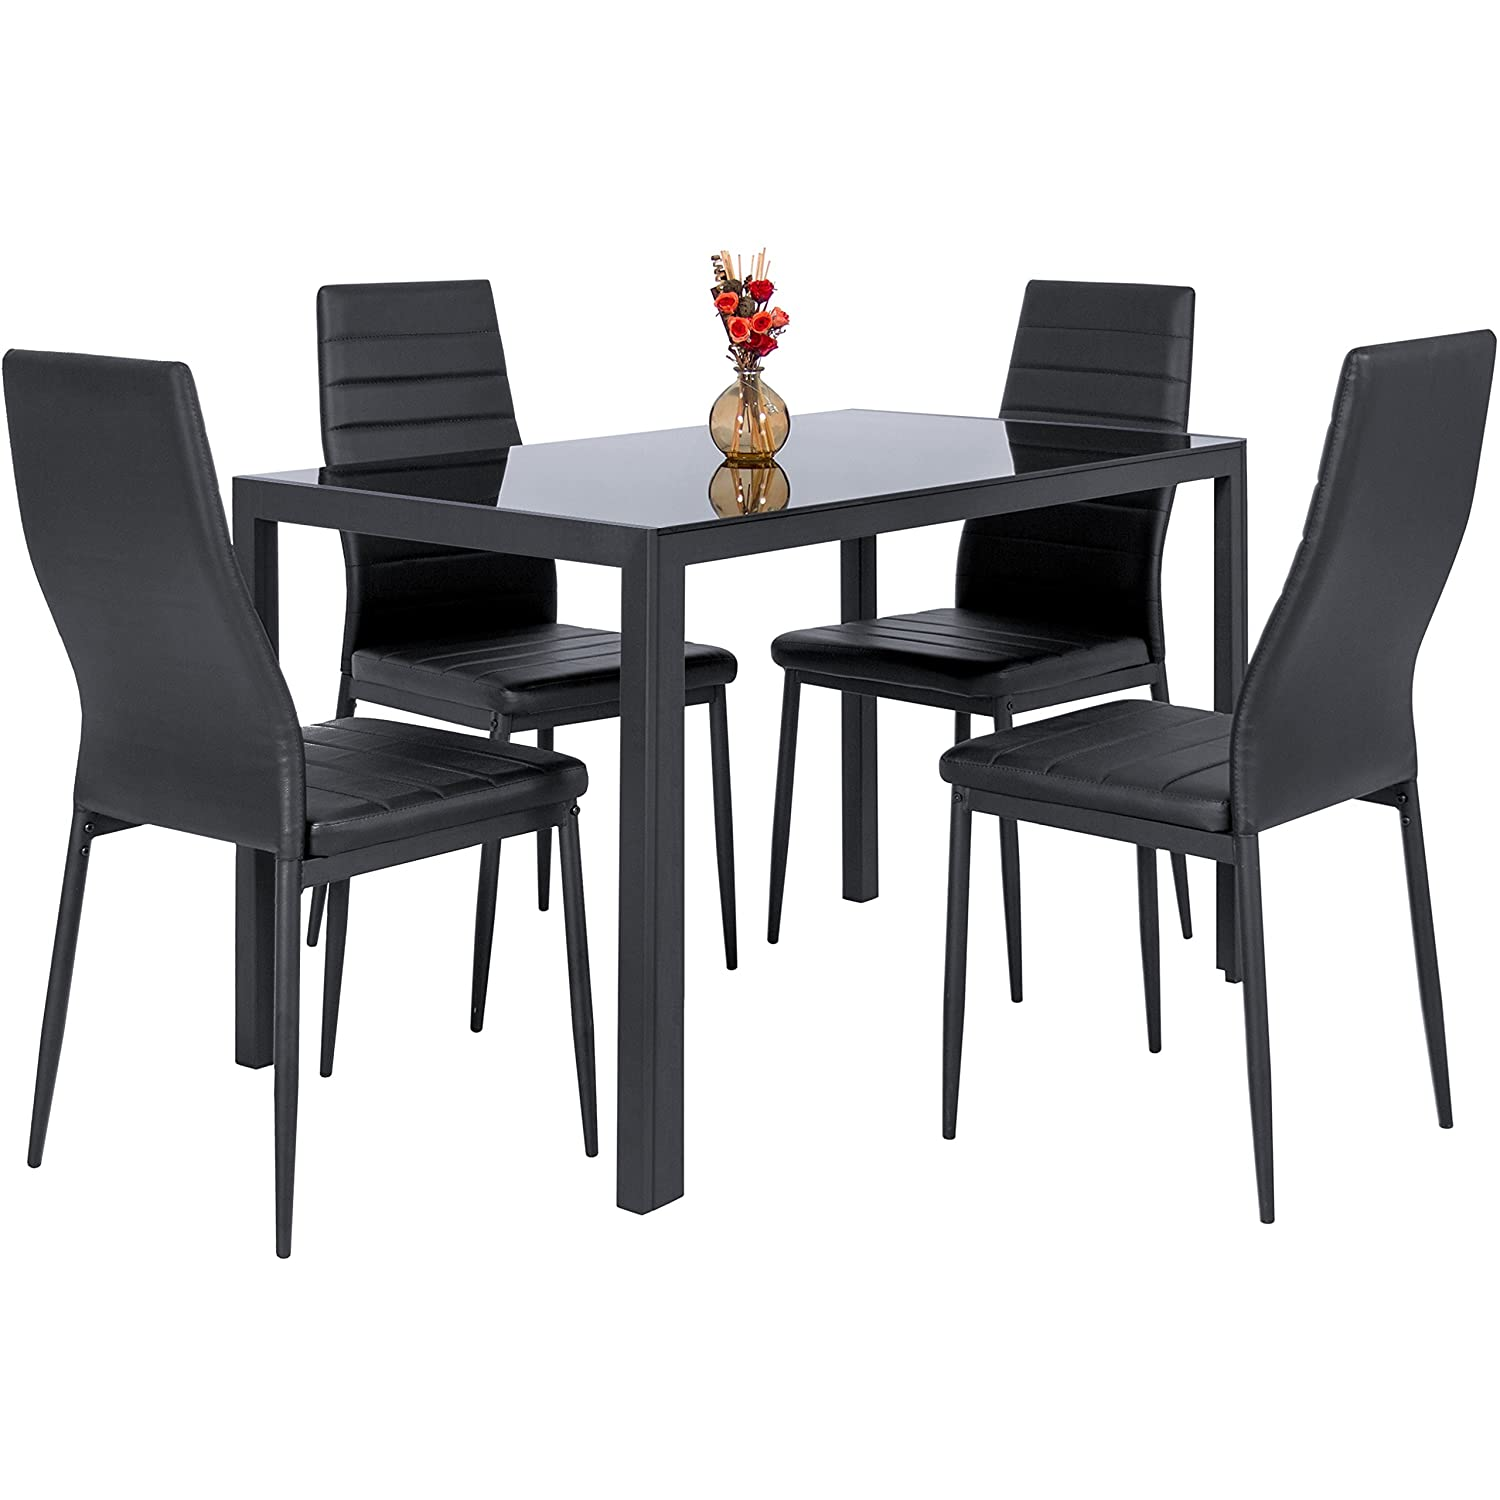 Dining table with chairs - Best Choice Products 5 Piece Kitchen Dining Table Set W Glass Top And 4 Leather Chairs Dinette Black